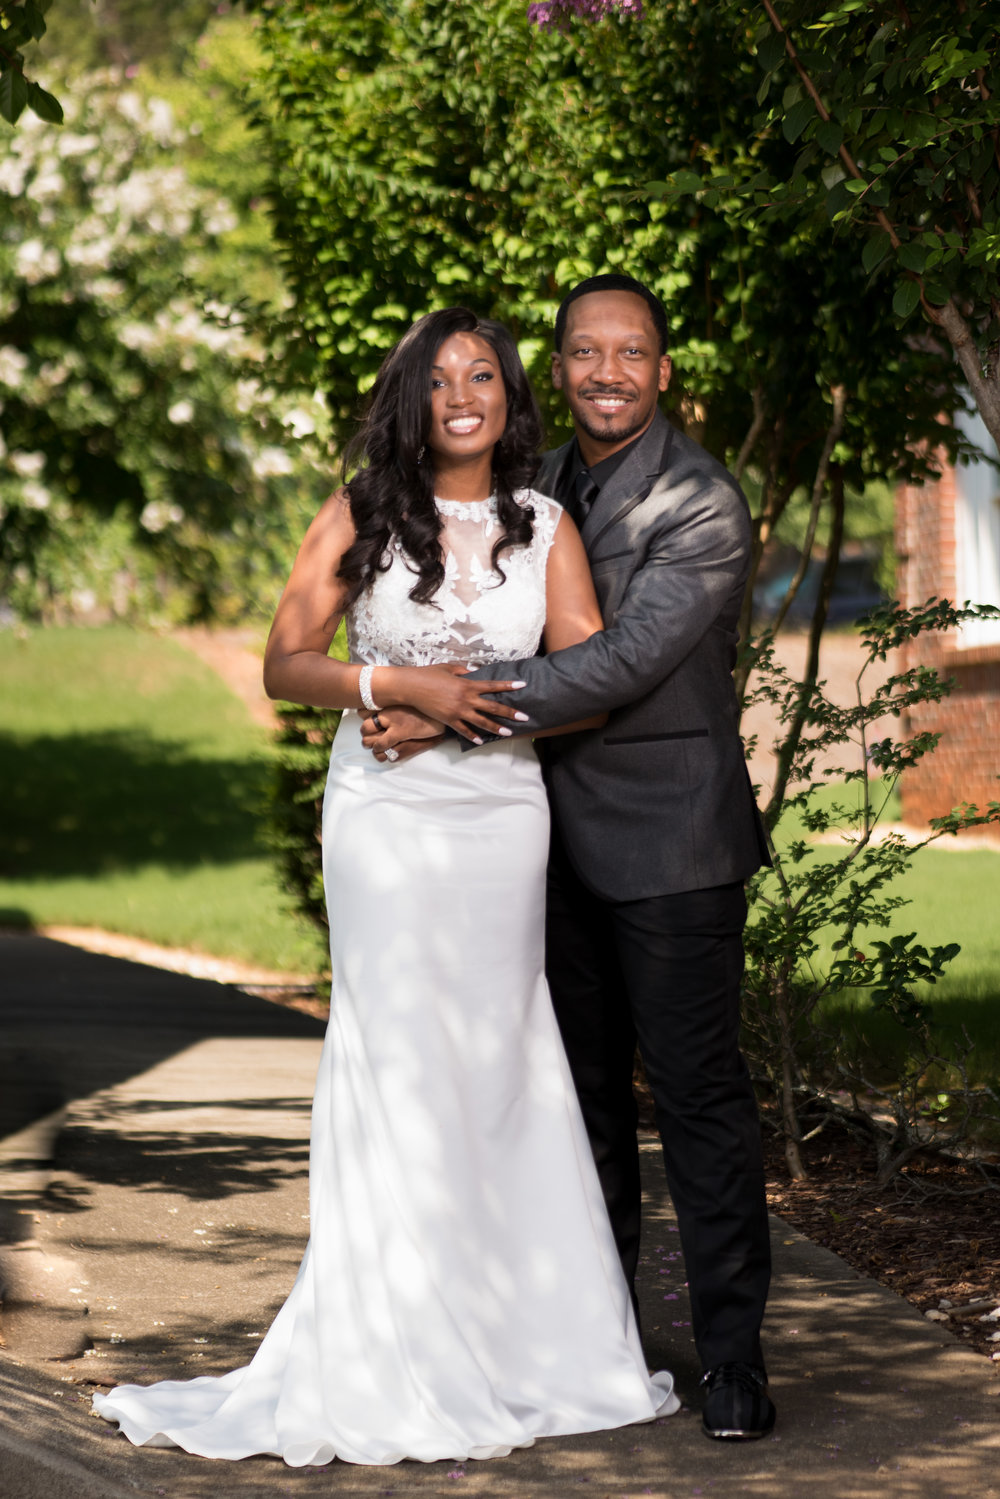 Latoya+Mike_Leighton-DaCosta-Photographer_Ceremonyuntitled-9517-21.jpg